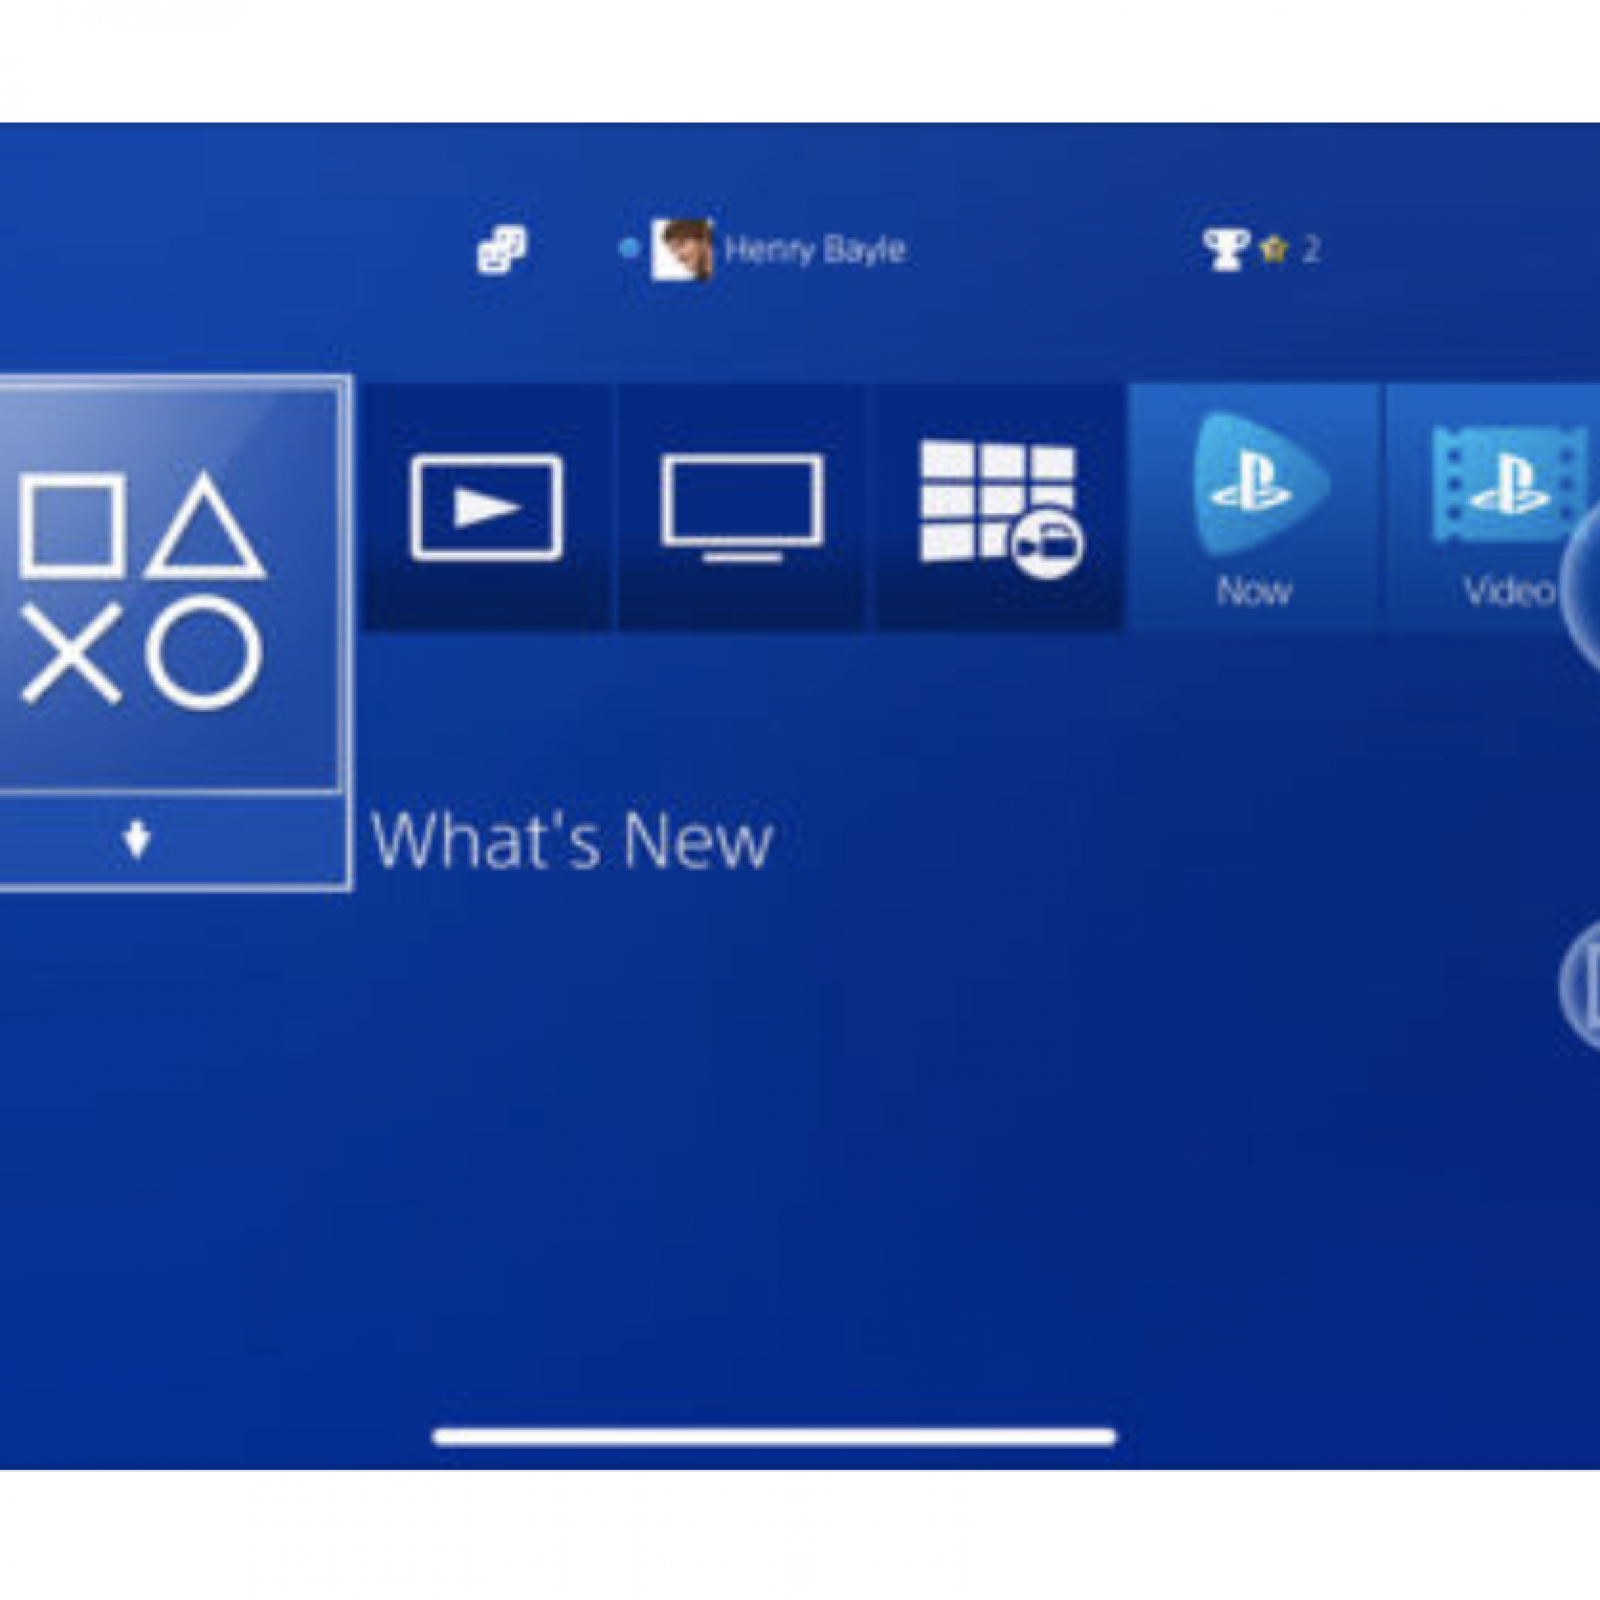 PS4 Remote Play For iOS: How To Download and Stream PS4 Games on